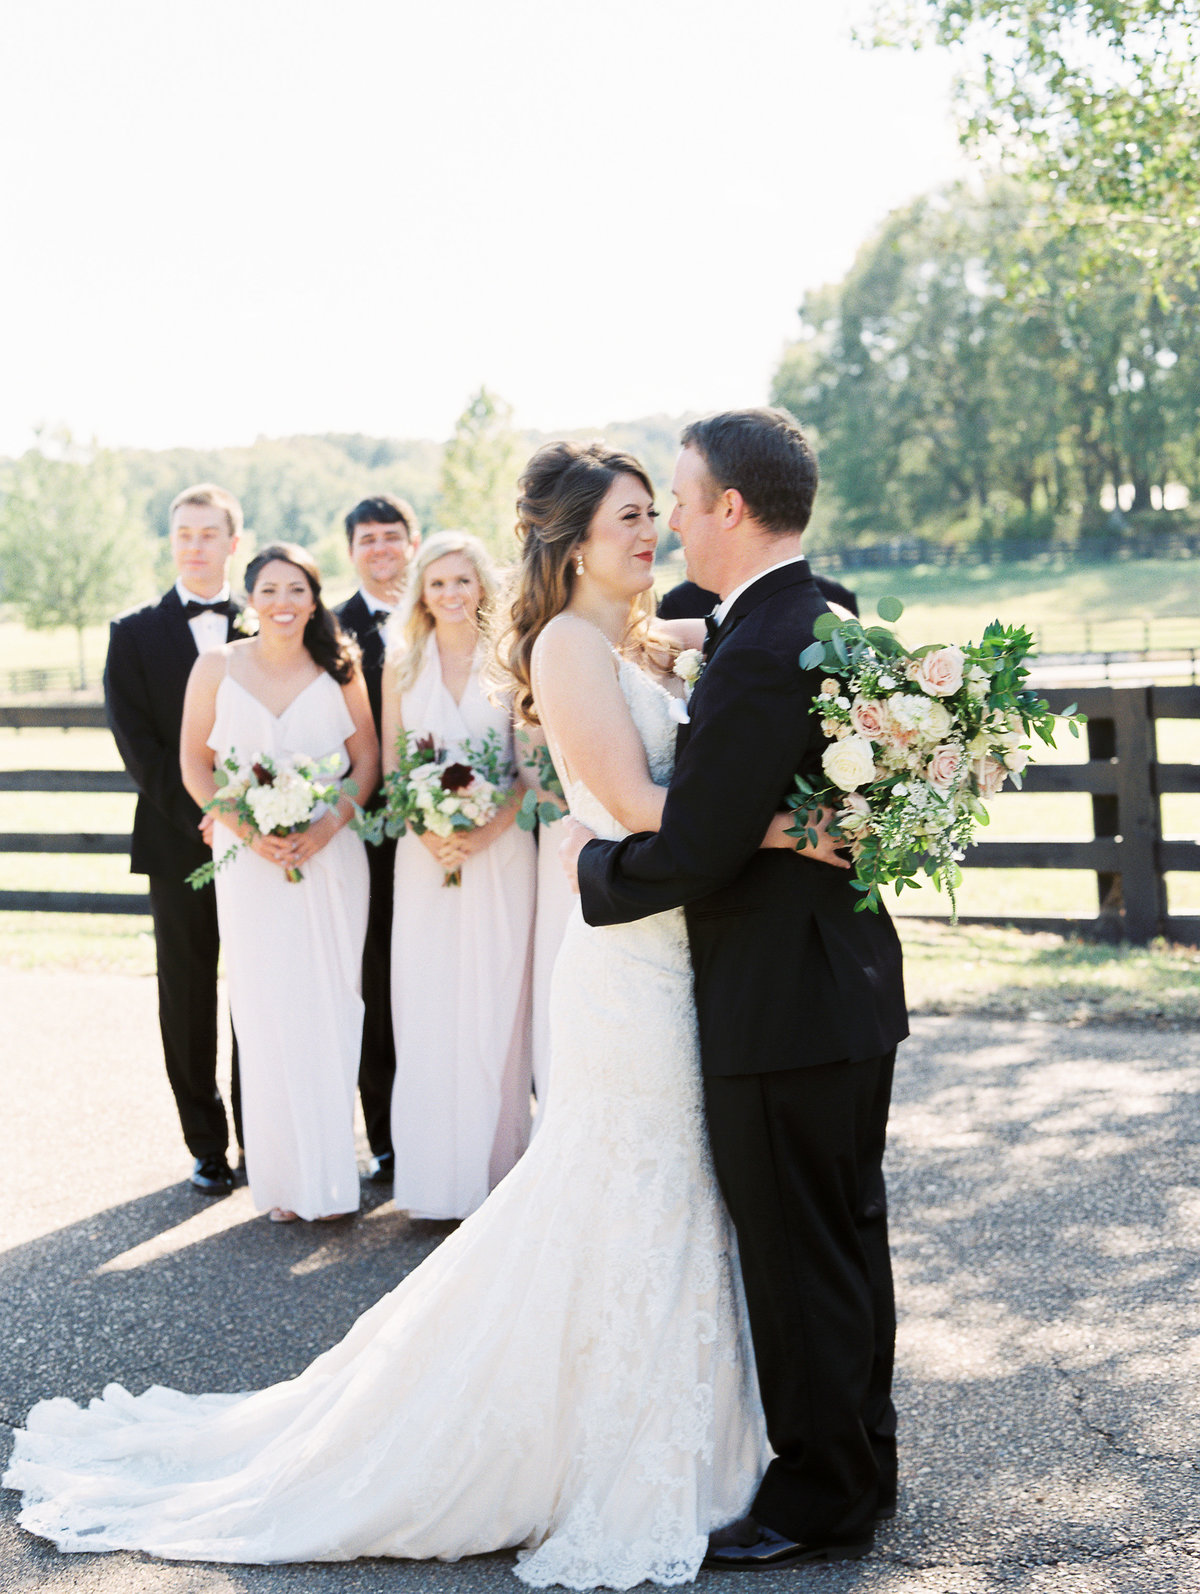 698_Anne & Ryan Wedding_Lindsay Vallas Photog